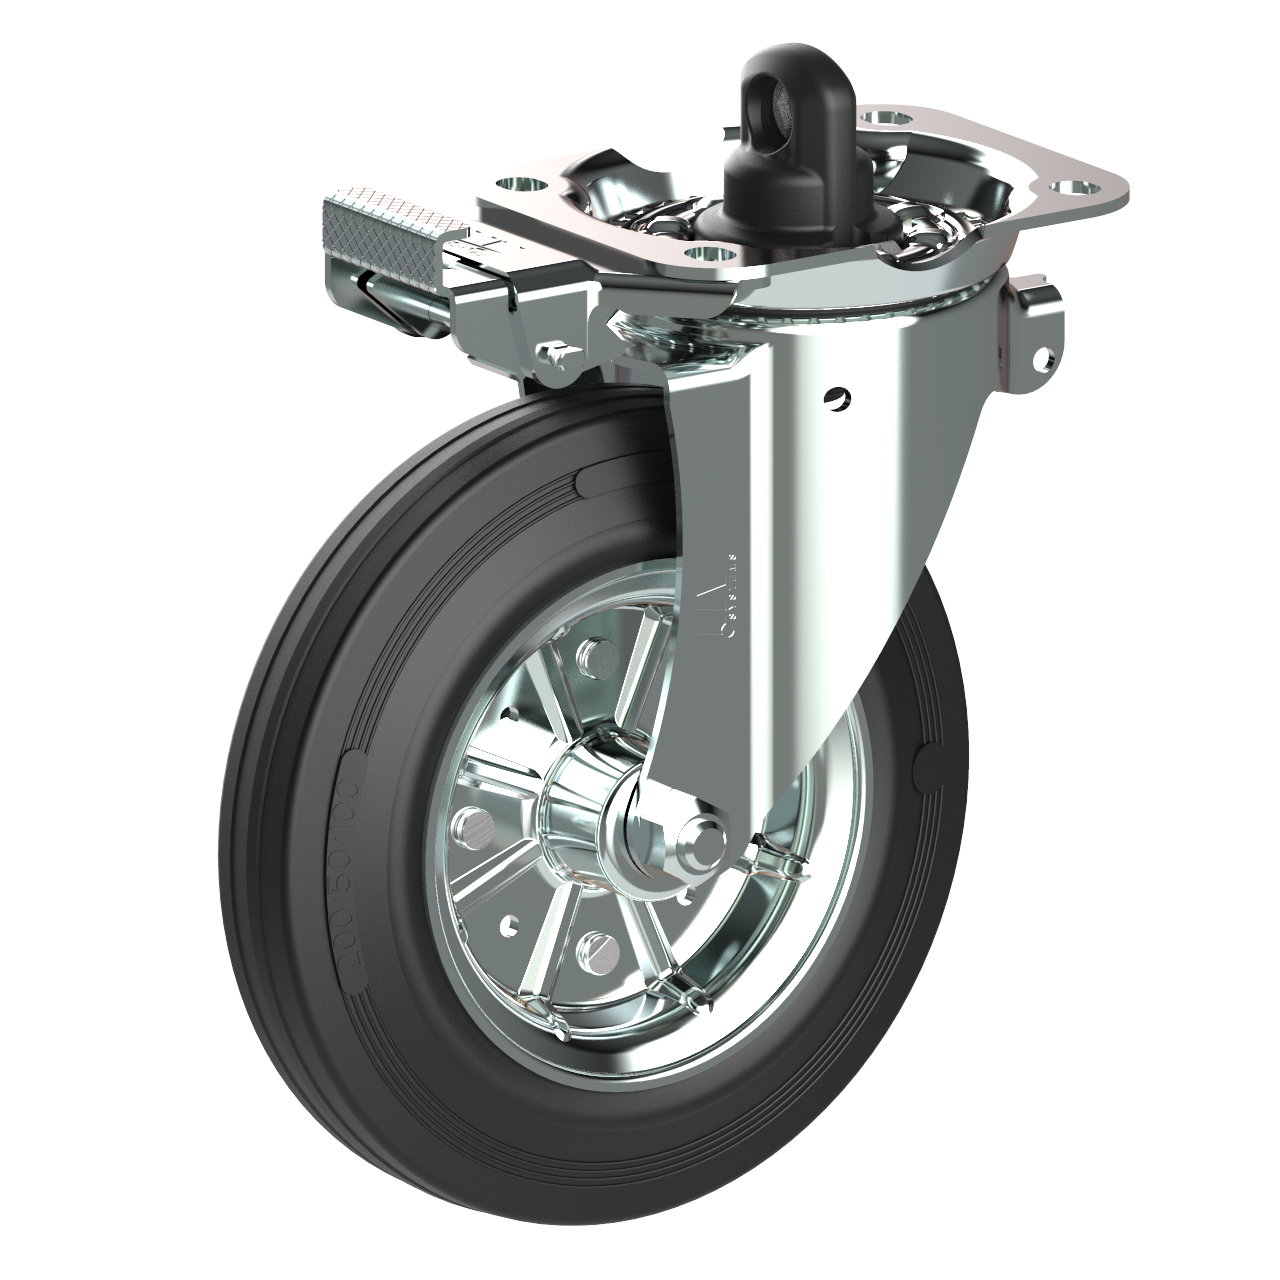 Container castor with central brake. The cam connects to the brake rod and offers easy braking and release.